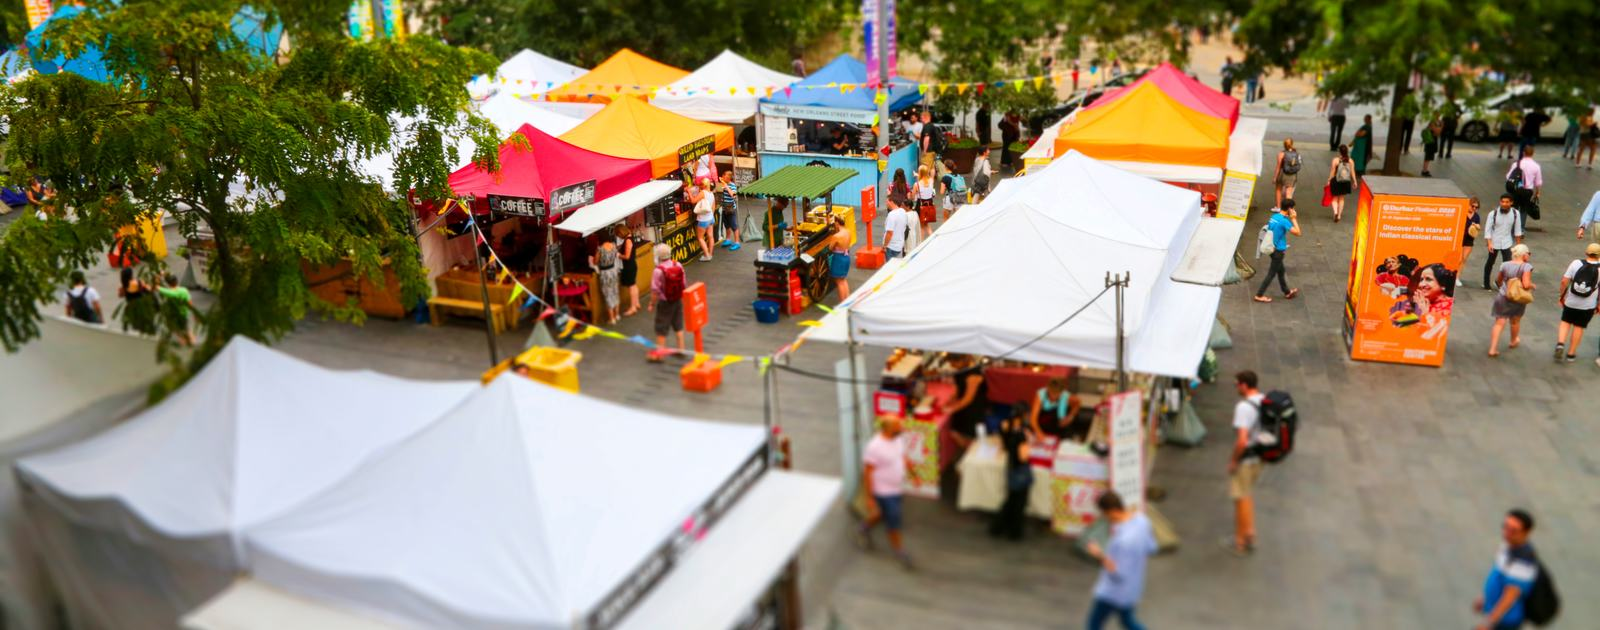 Southbank Centre Food Market.Aerial Tilt Shift Views.August 2016